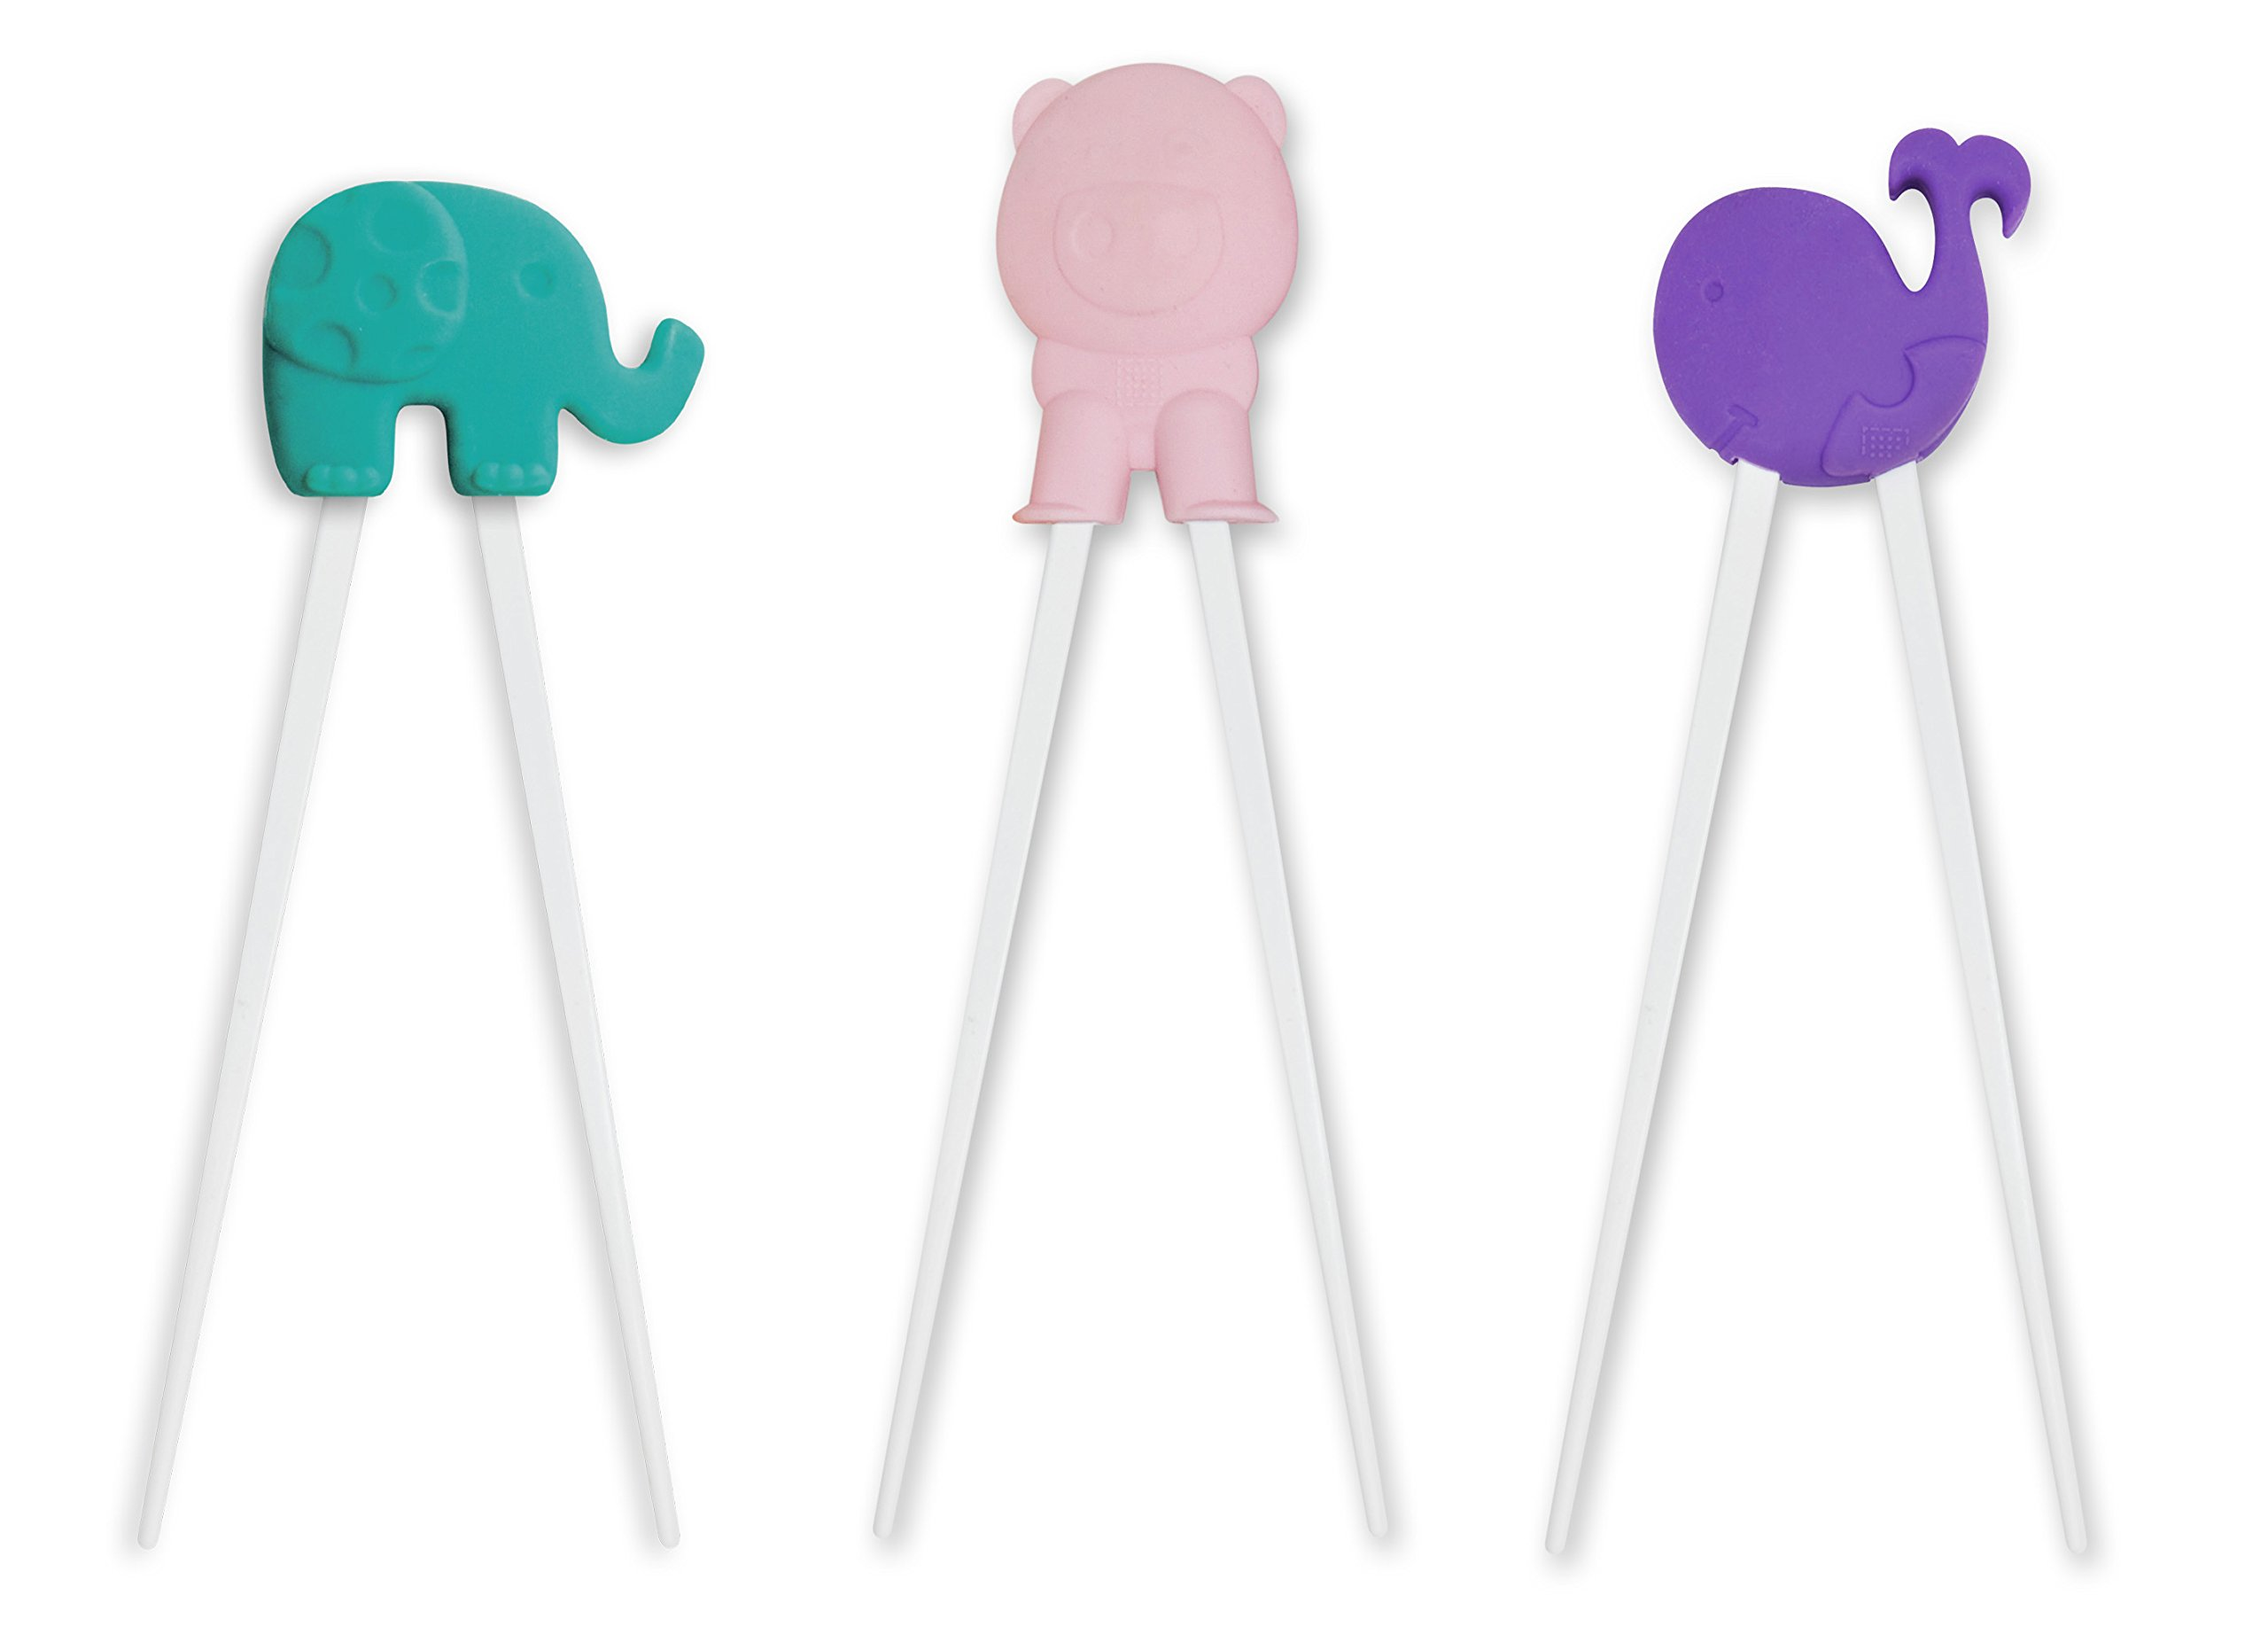 Marcus & Marcus Baby Learning Chopsticks 3 Pack Set, Ollie the Elephant, Pokey the Piglet & Willo the Whale